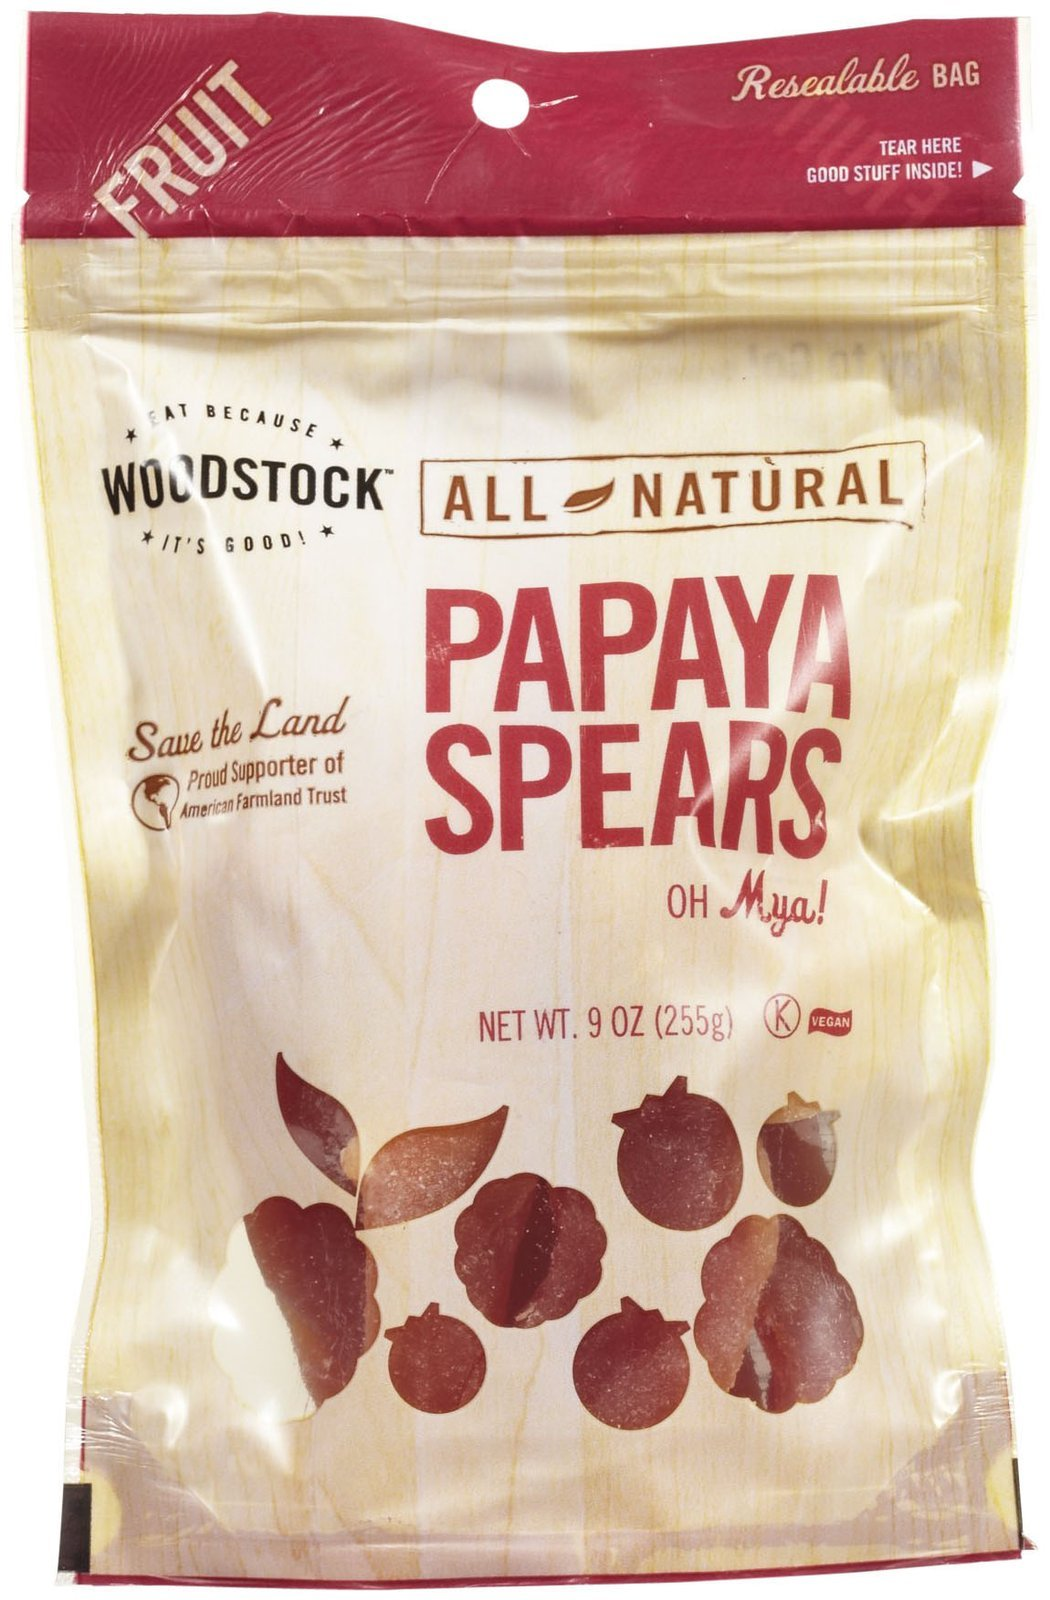 All Natural Papaya Spears 9 oz Pkg